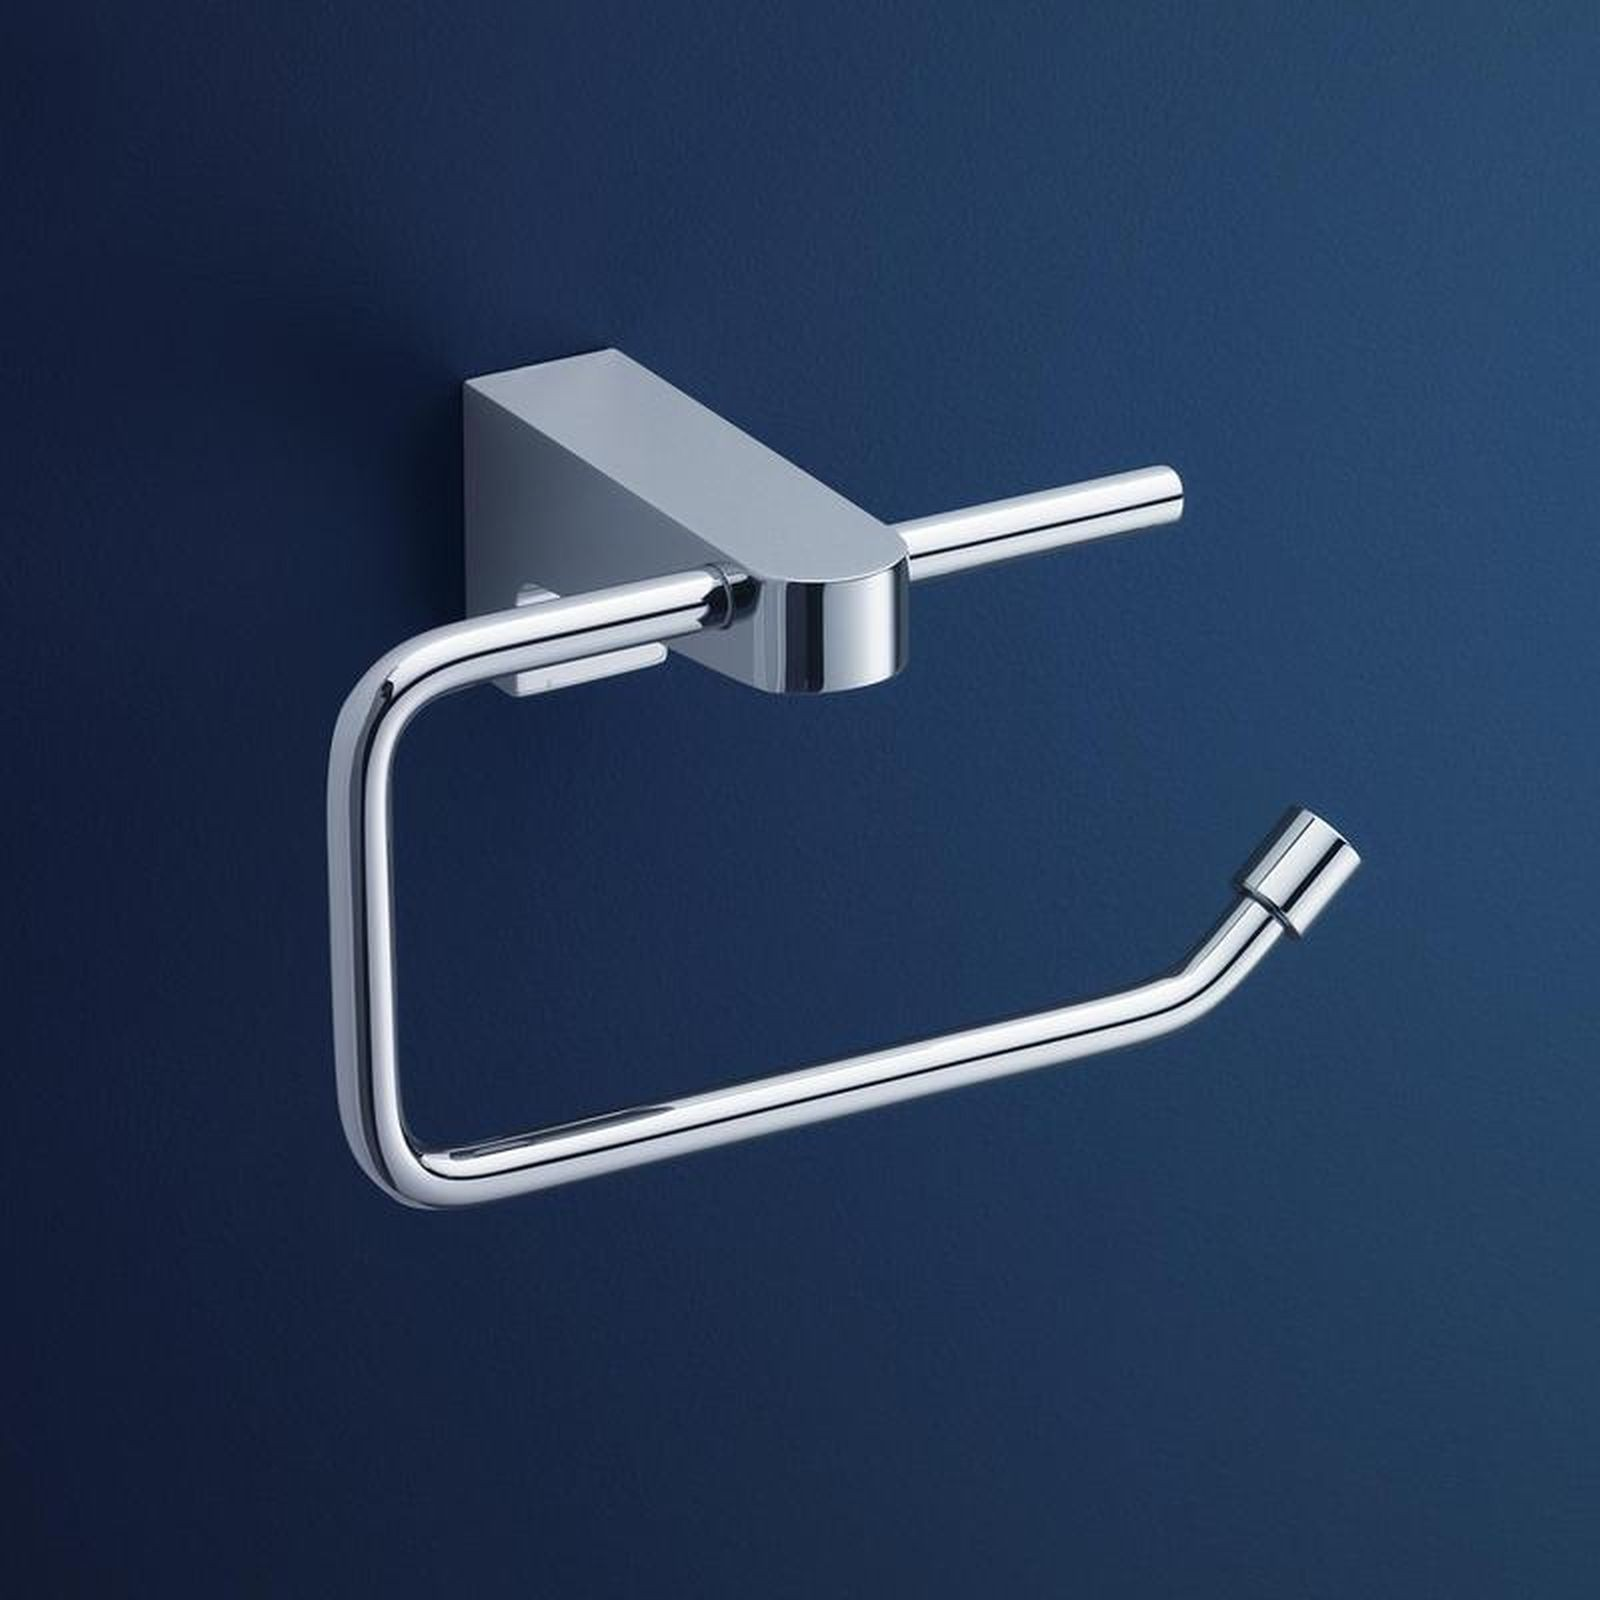 Dorf bathroom accessories - Download Cad Files For Dorf Arc Toilet Roll Holder